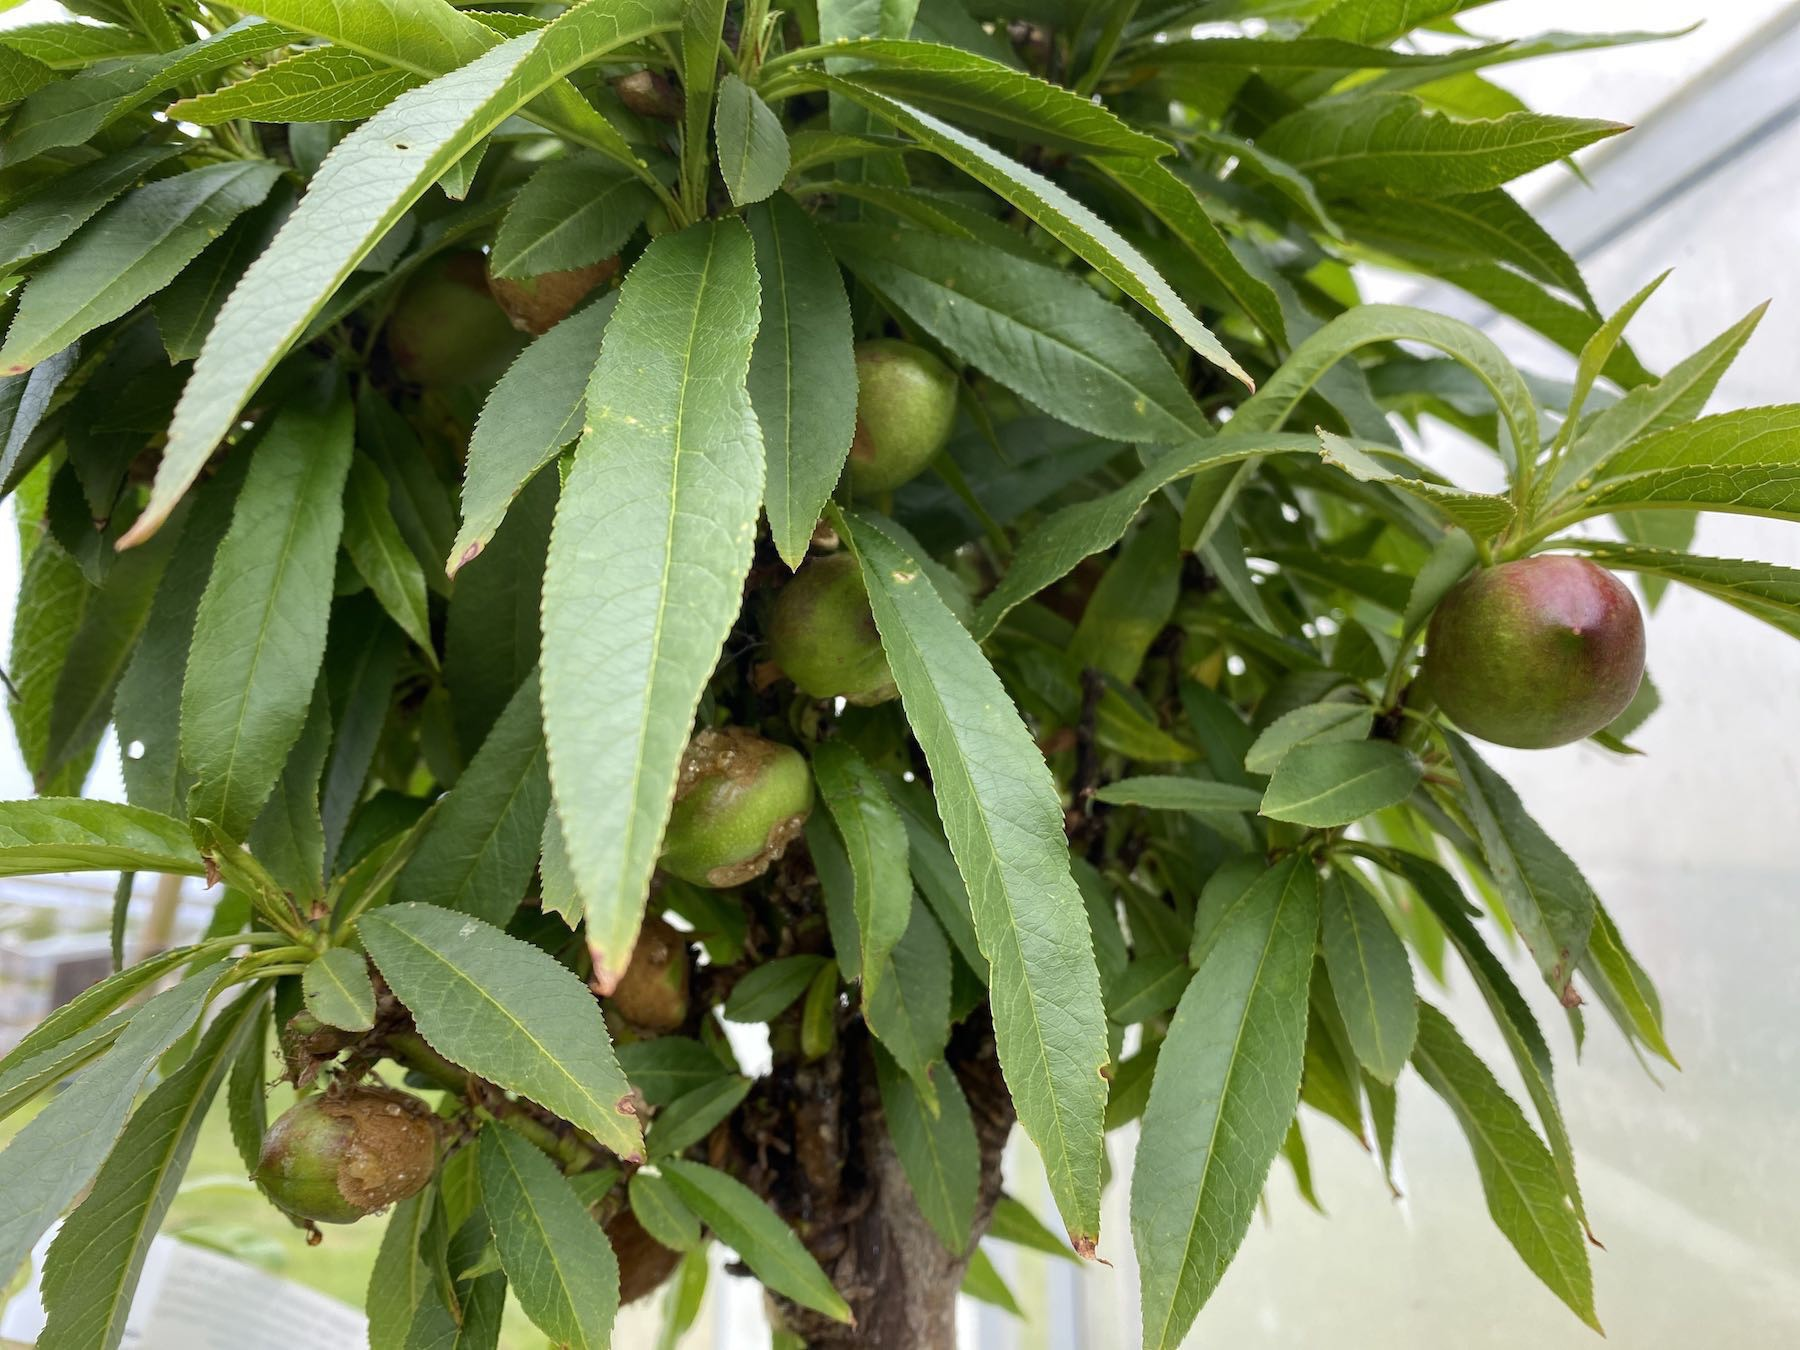 Fruit hanging on a young dwarf nectarine tree.